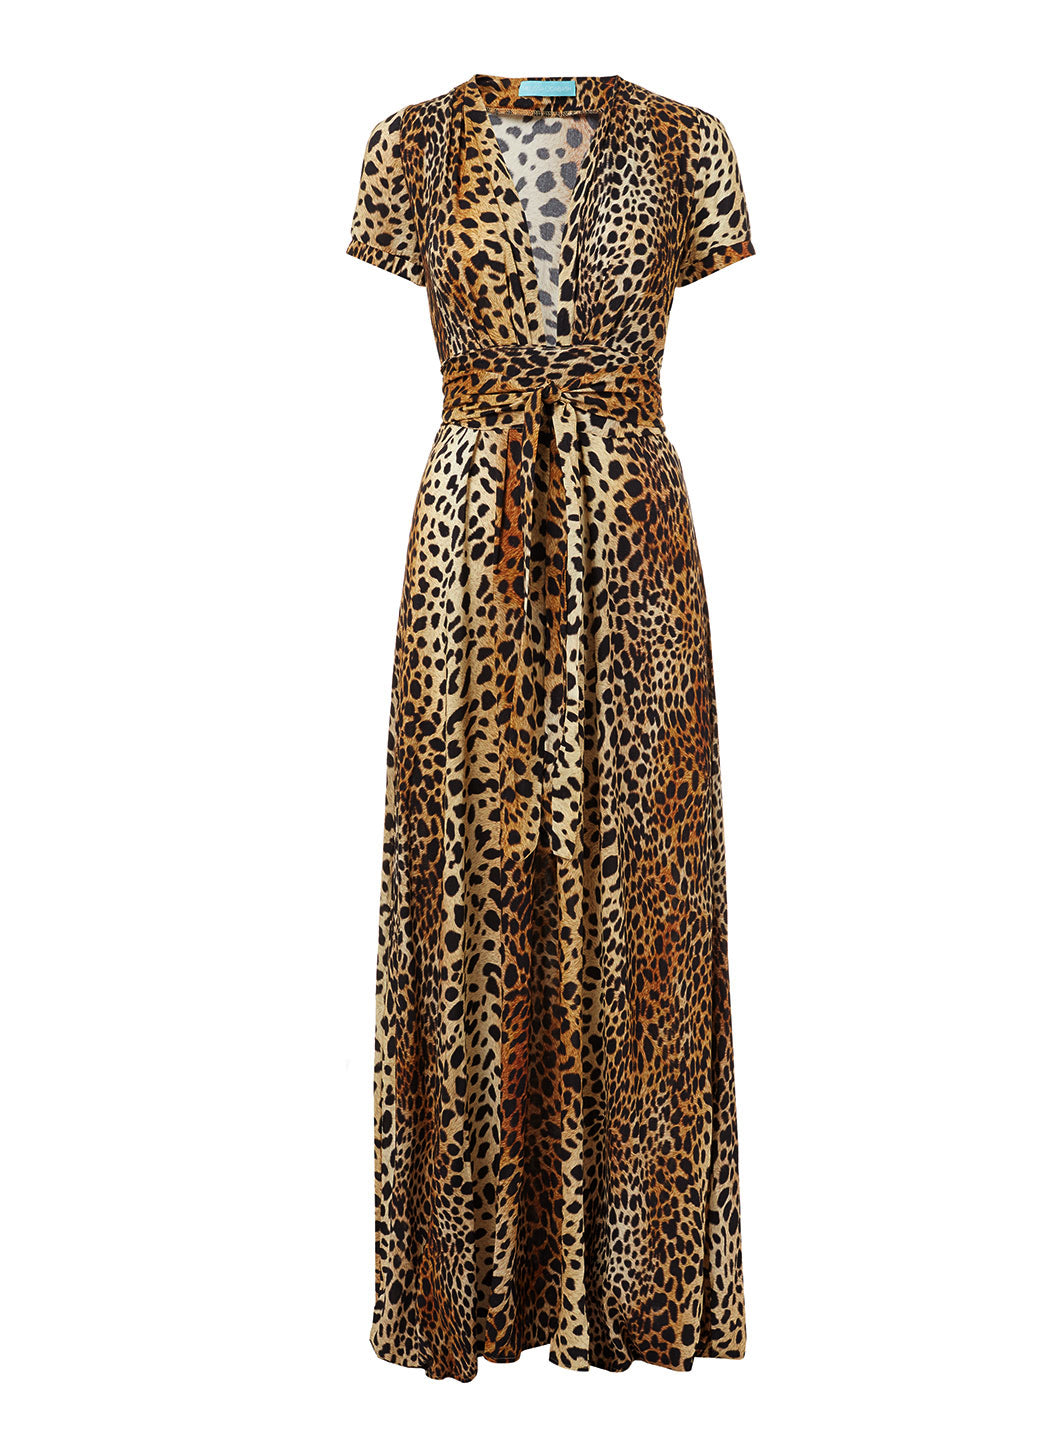 Lou Cheetah V-Neck Belted Maxi Dress - Melissa Odabash Beach Dresses